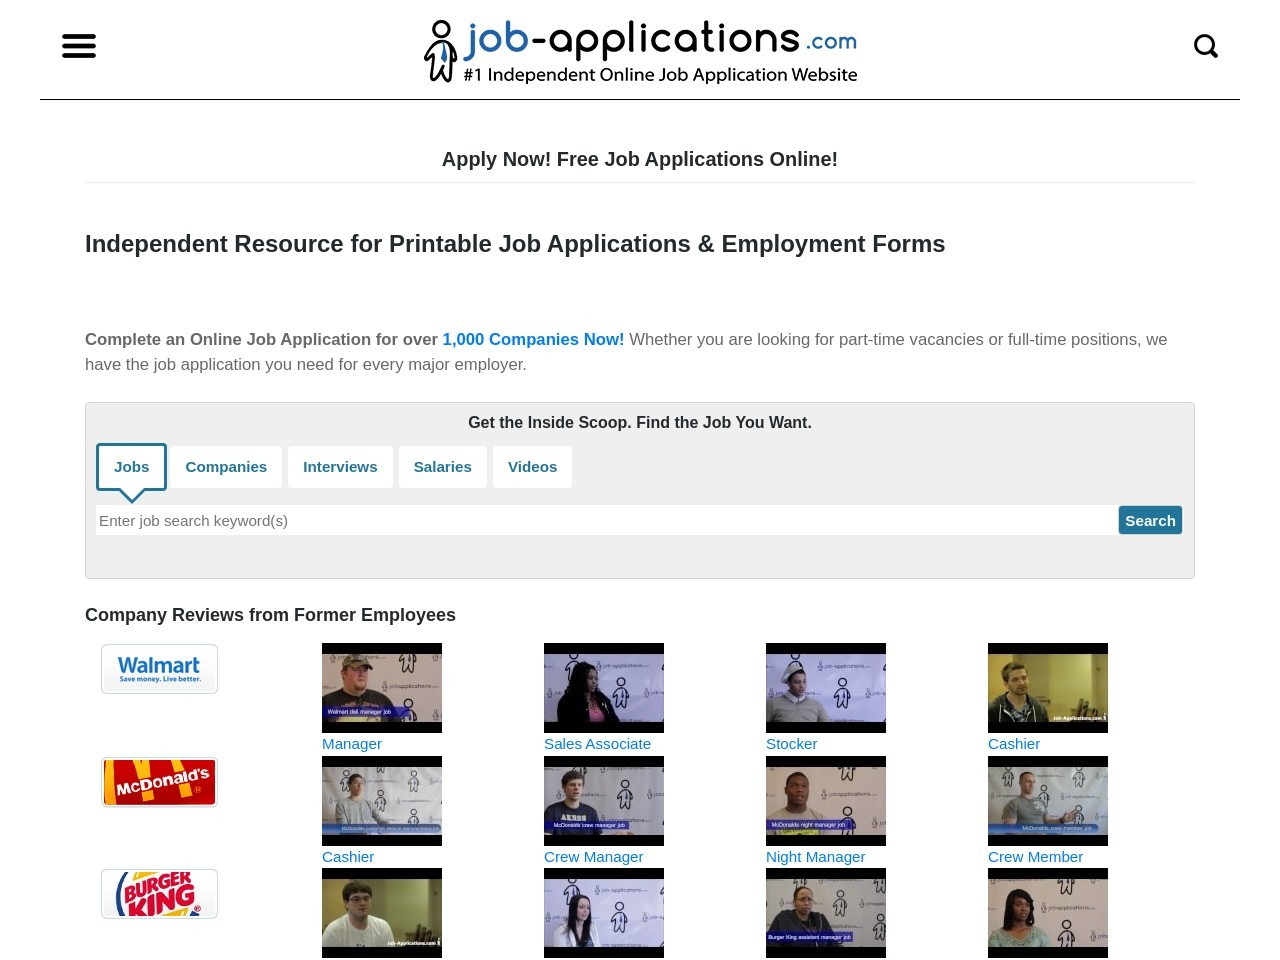 job-applications.com